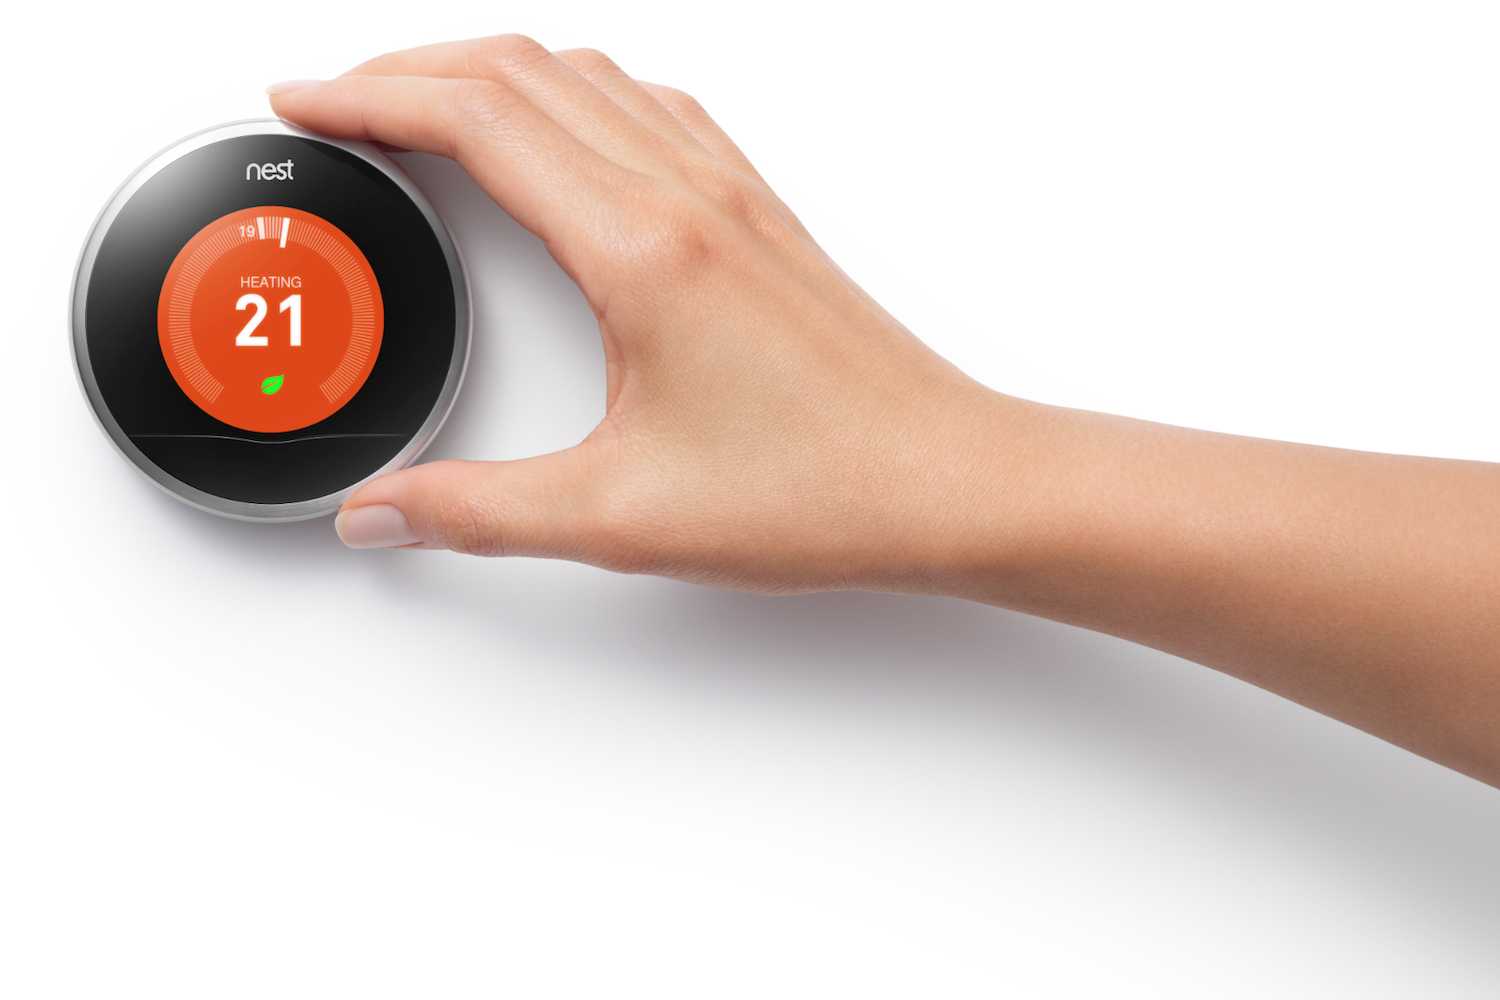 nest_uk_hand_heating